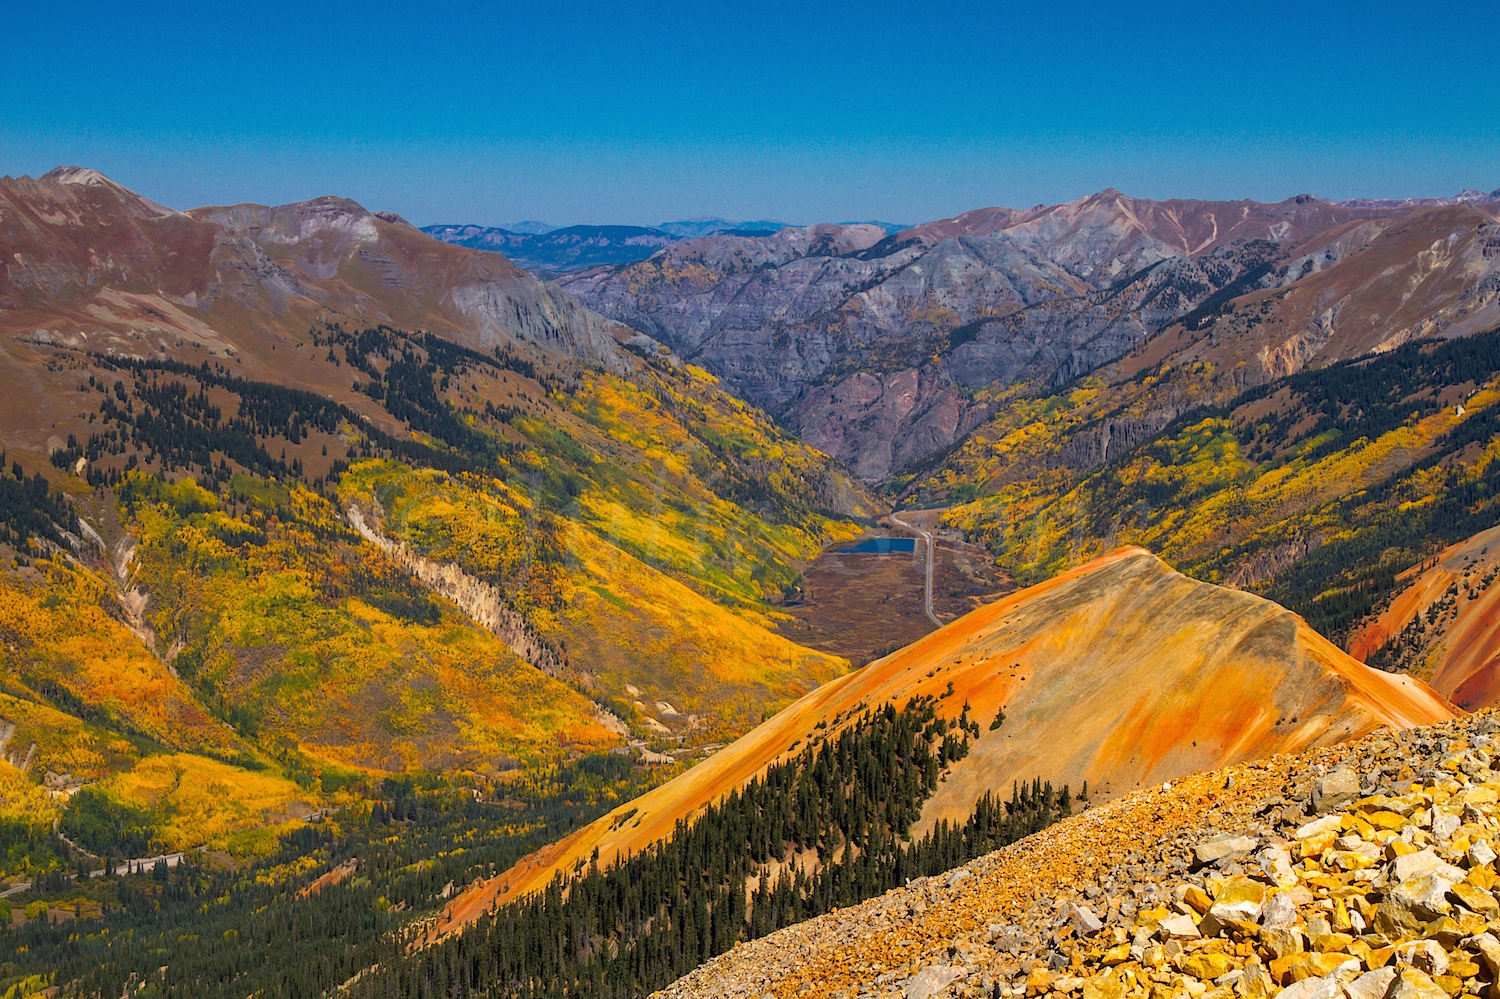 Red Mountain #3, Image #1538